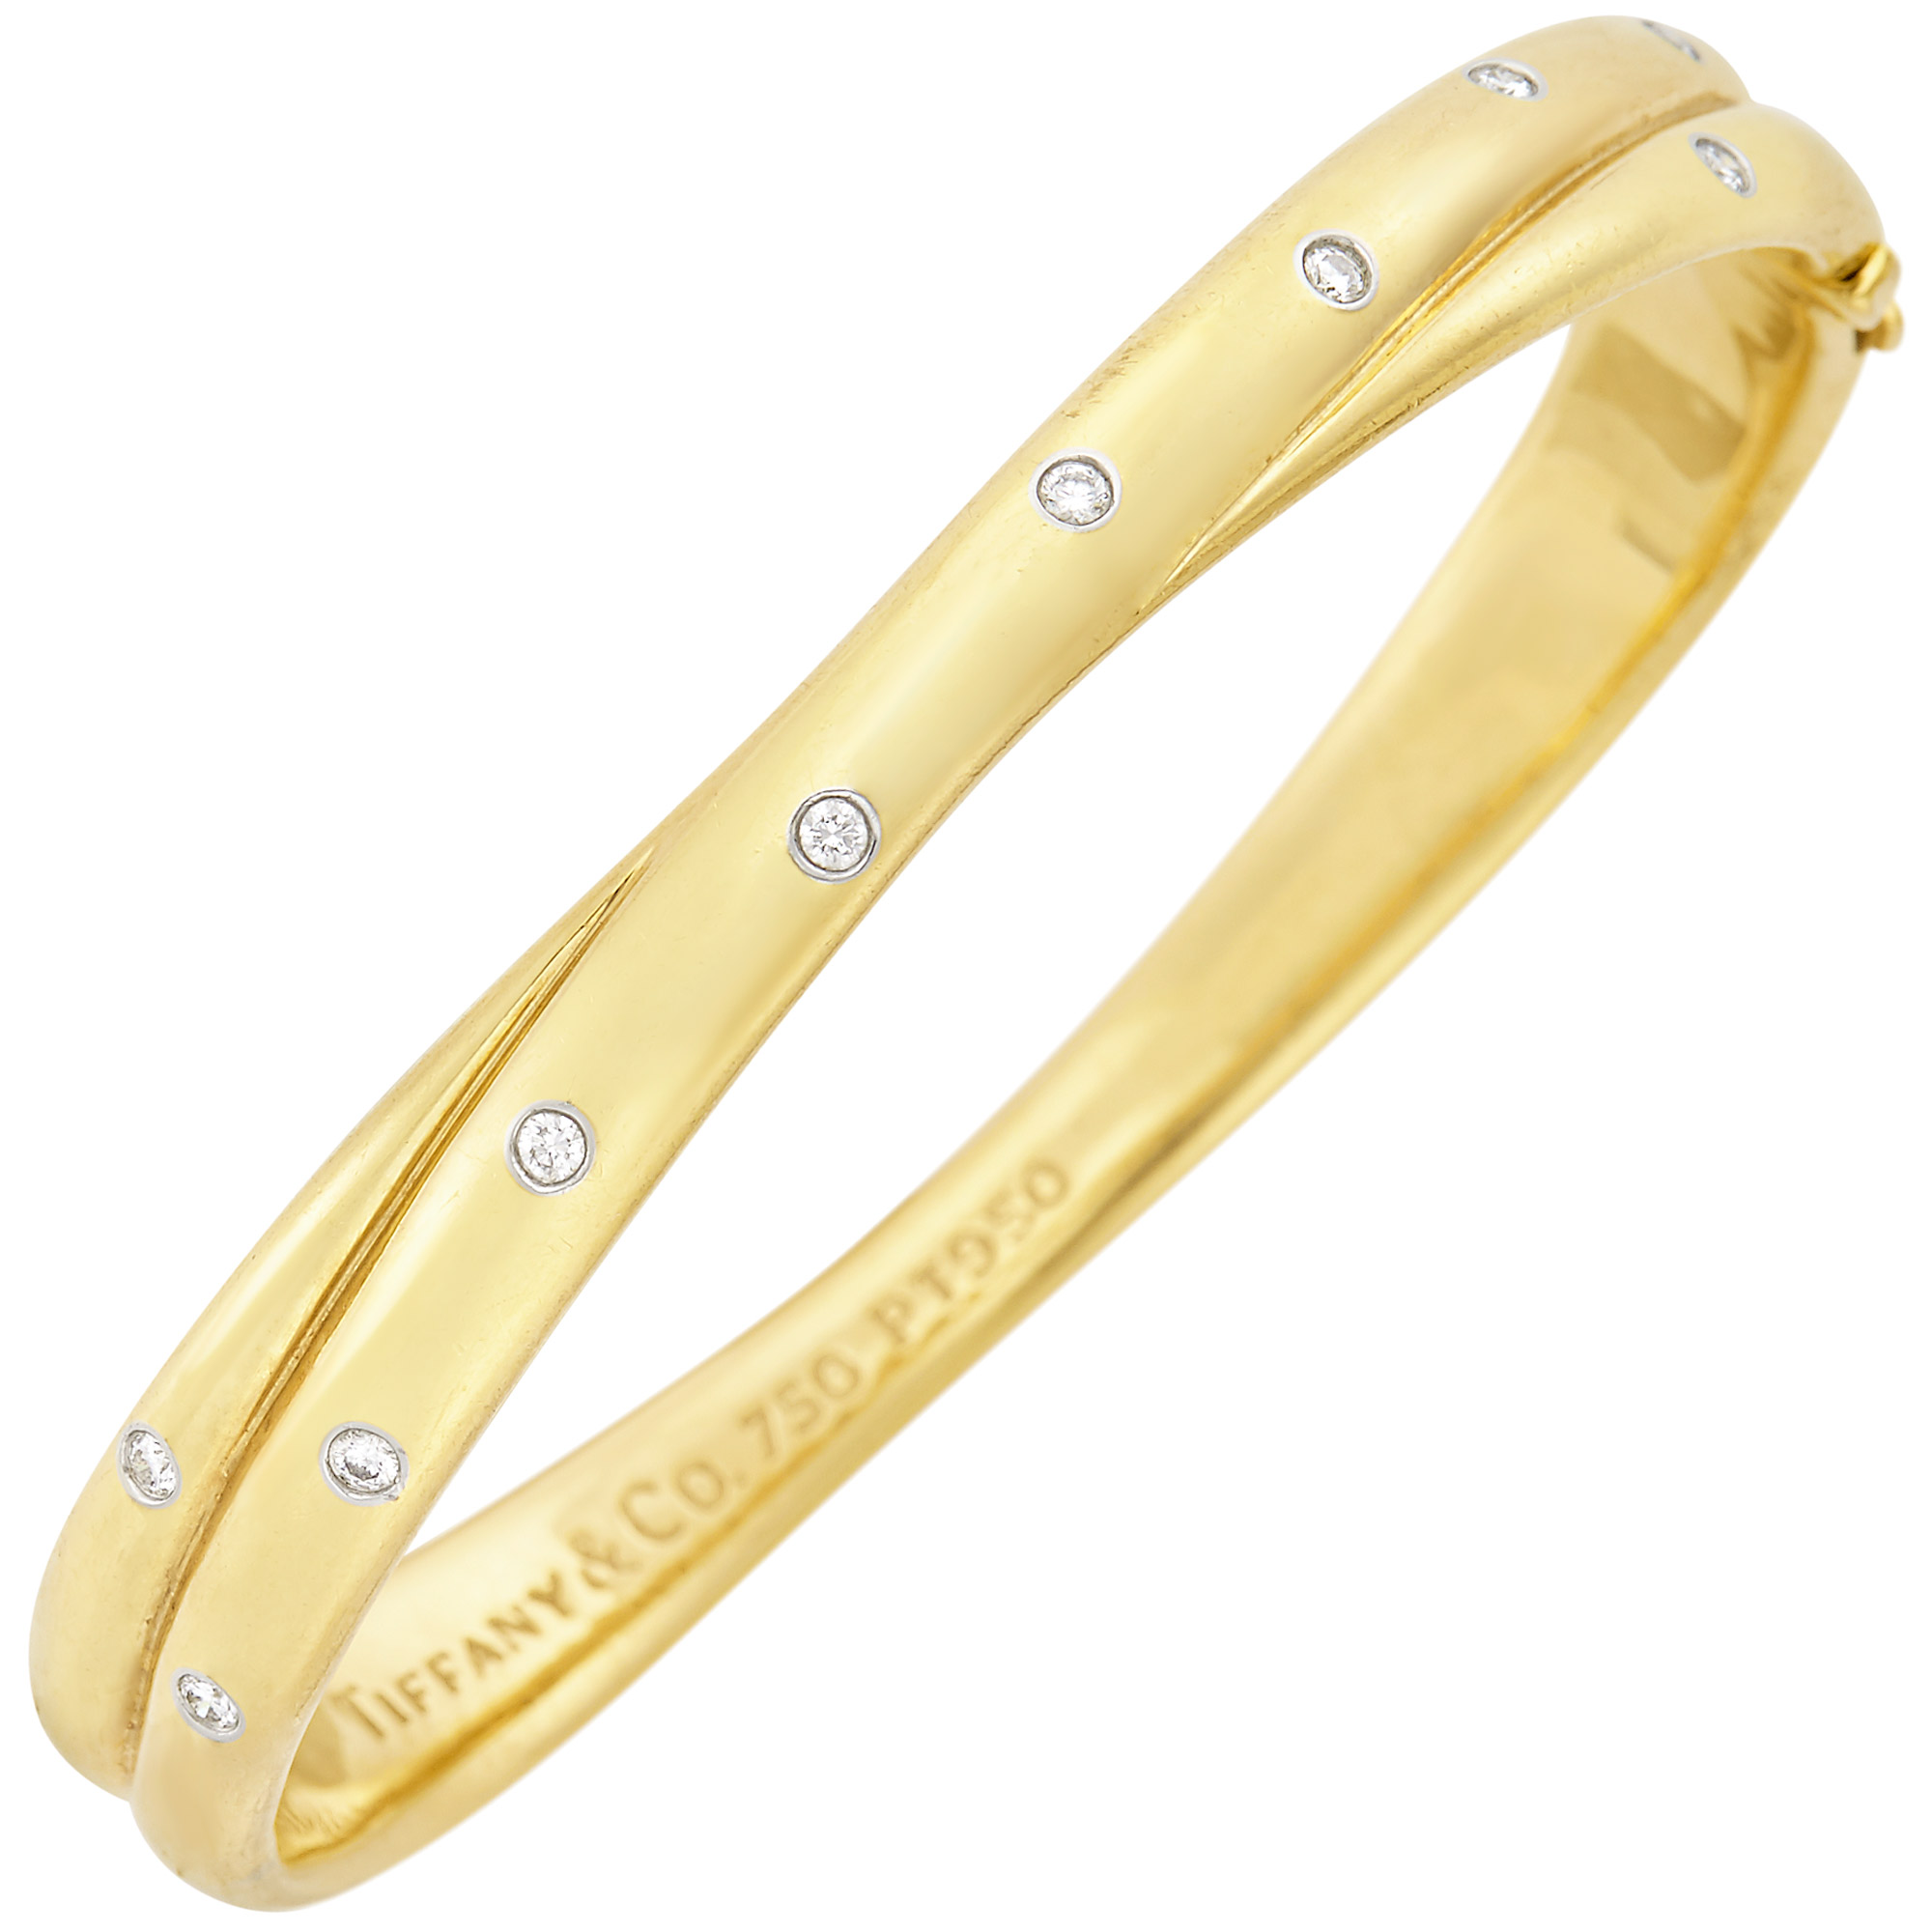 Lot image - Gold, Platinum and Diamond Etoile Bangle Bracelet, Tiffany & Co.